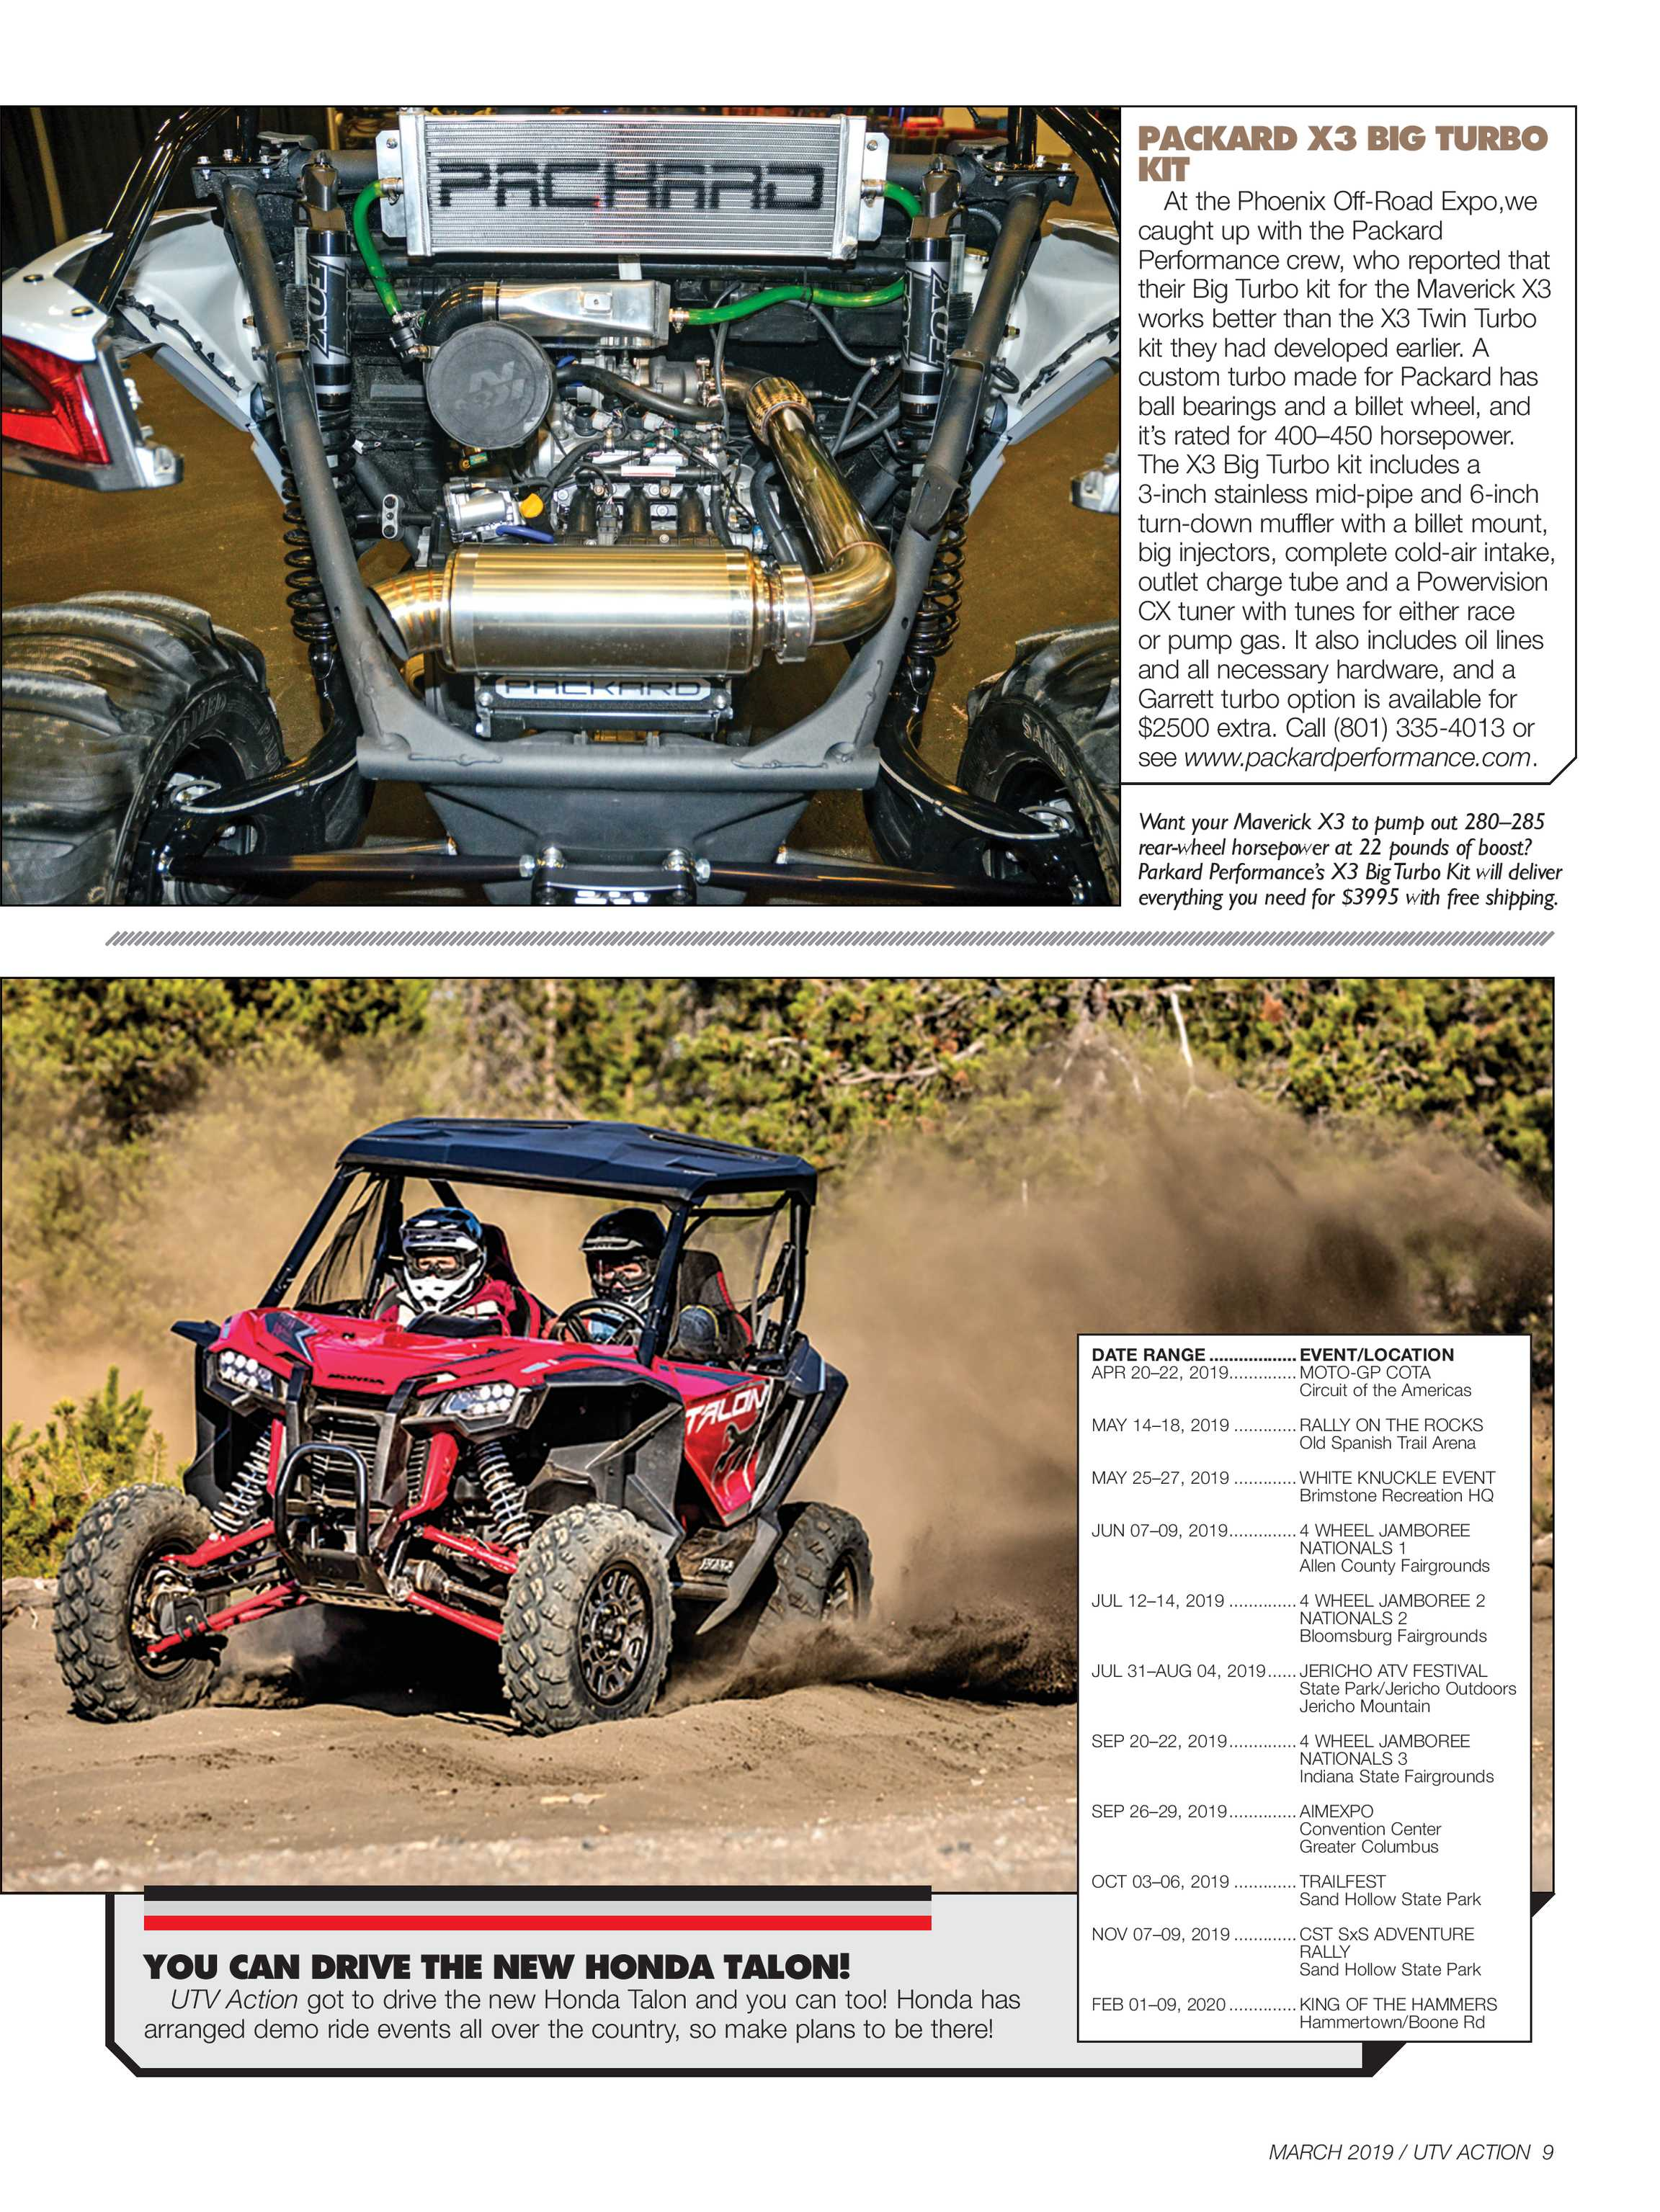 UTV Action Magazine - March 2019 - page 8